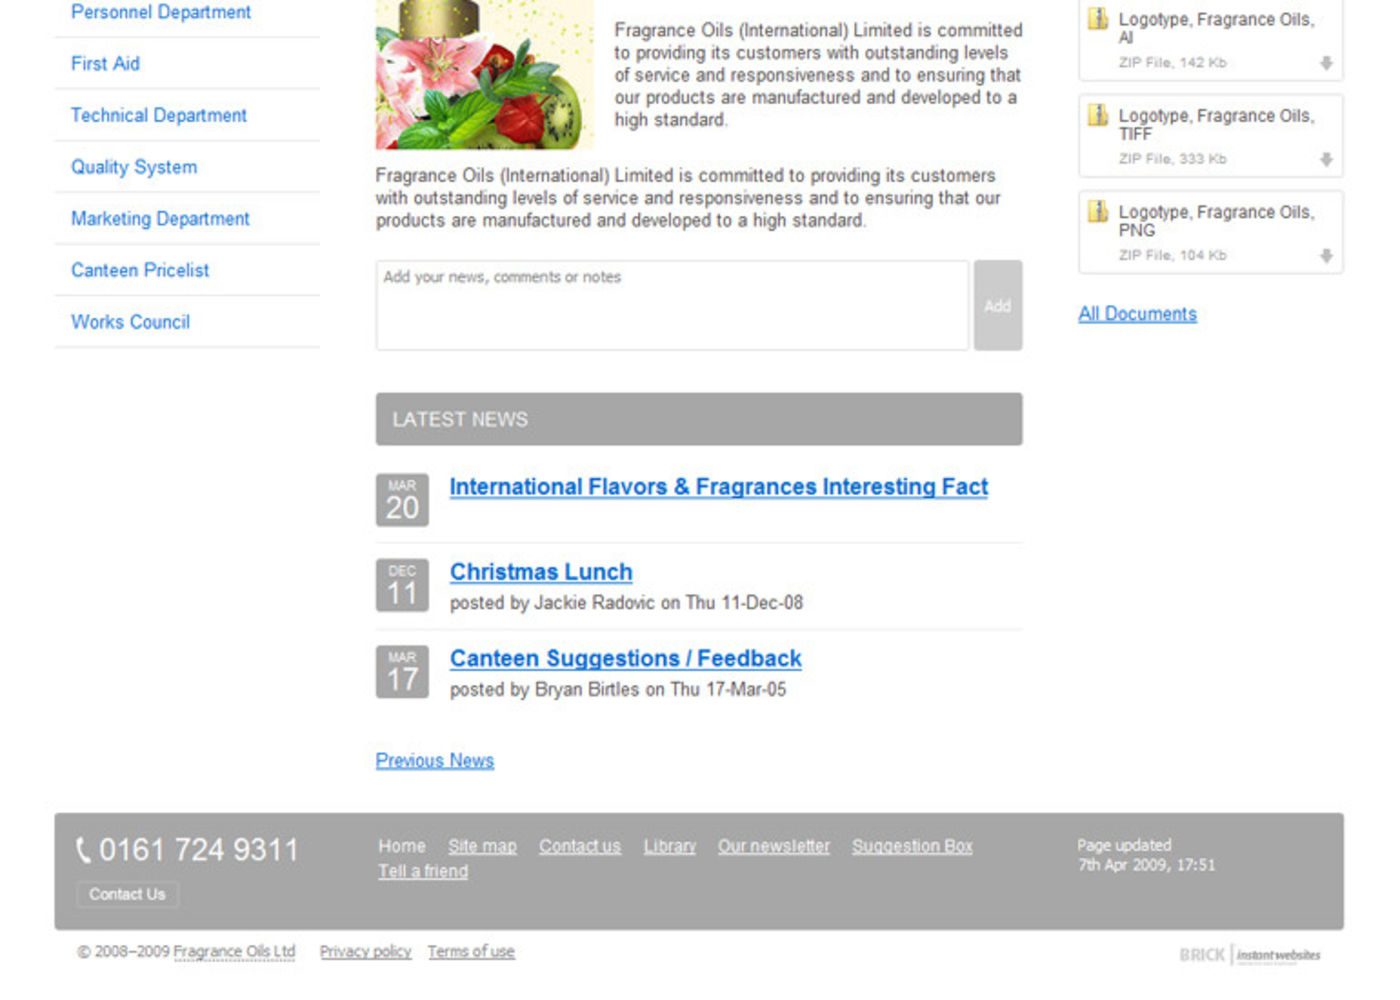 Fragrance Oils Ltd Homepage footer